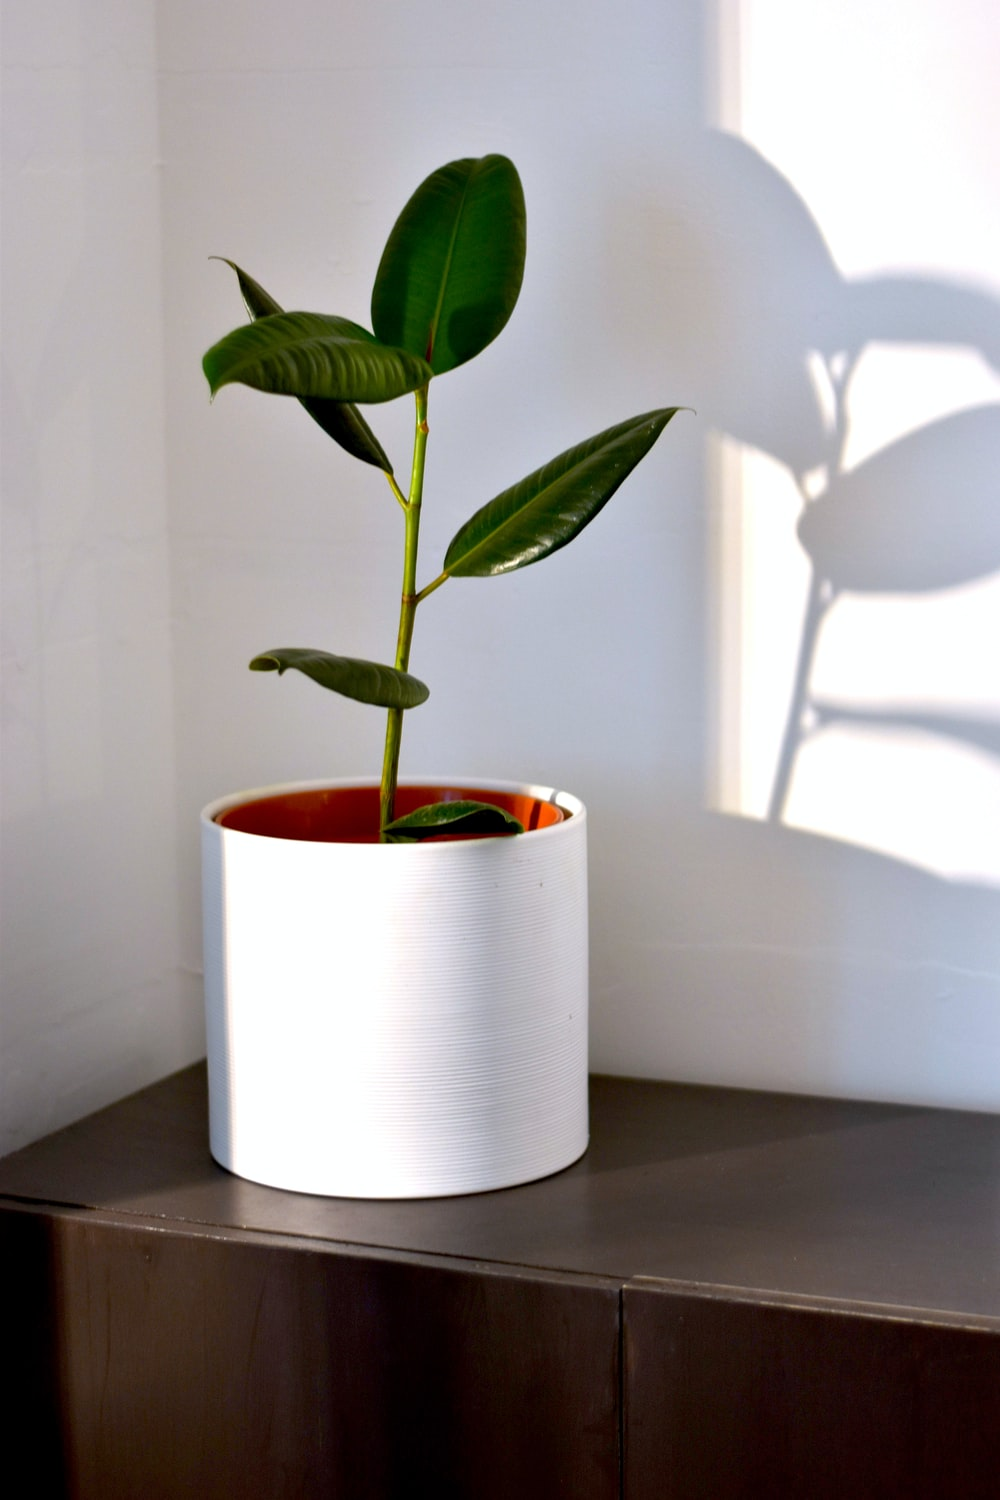 green rubber fig in pot